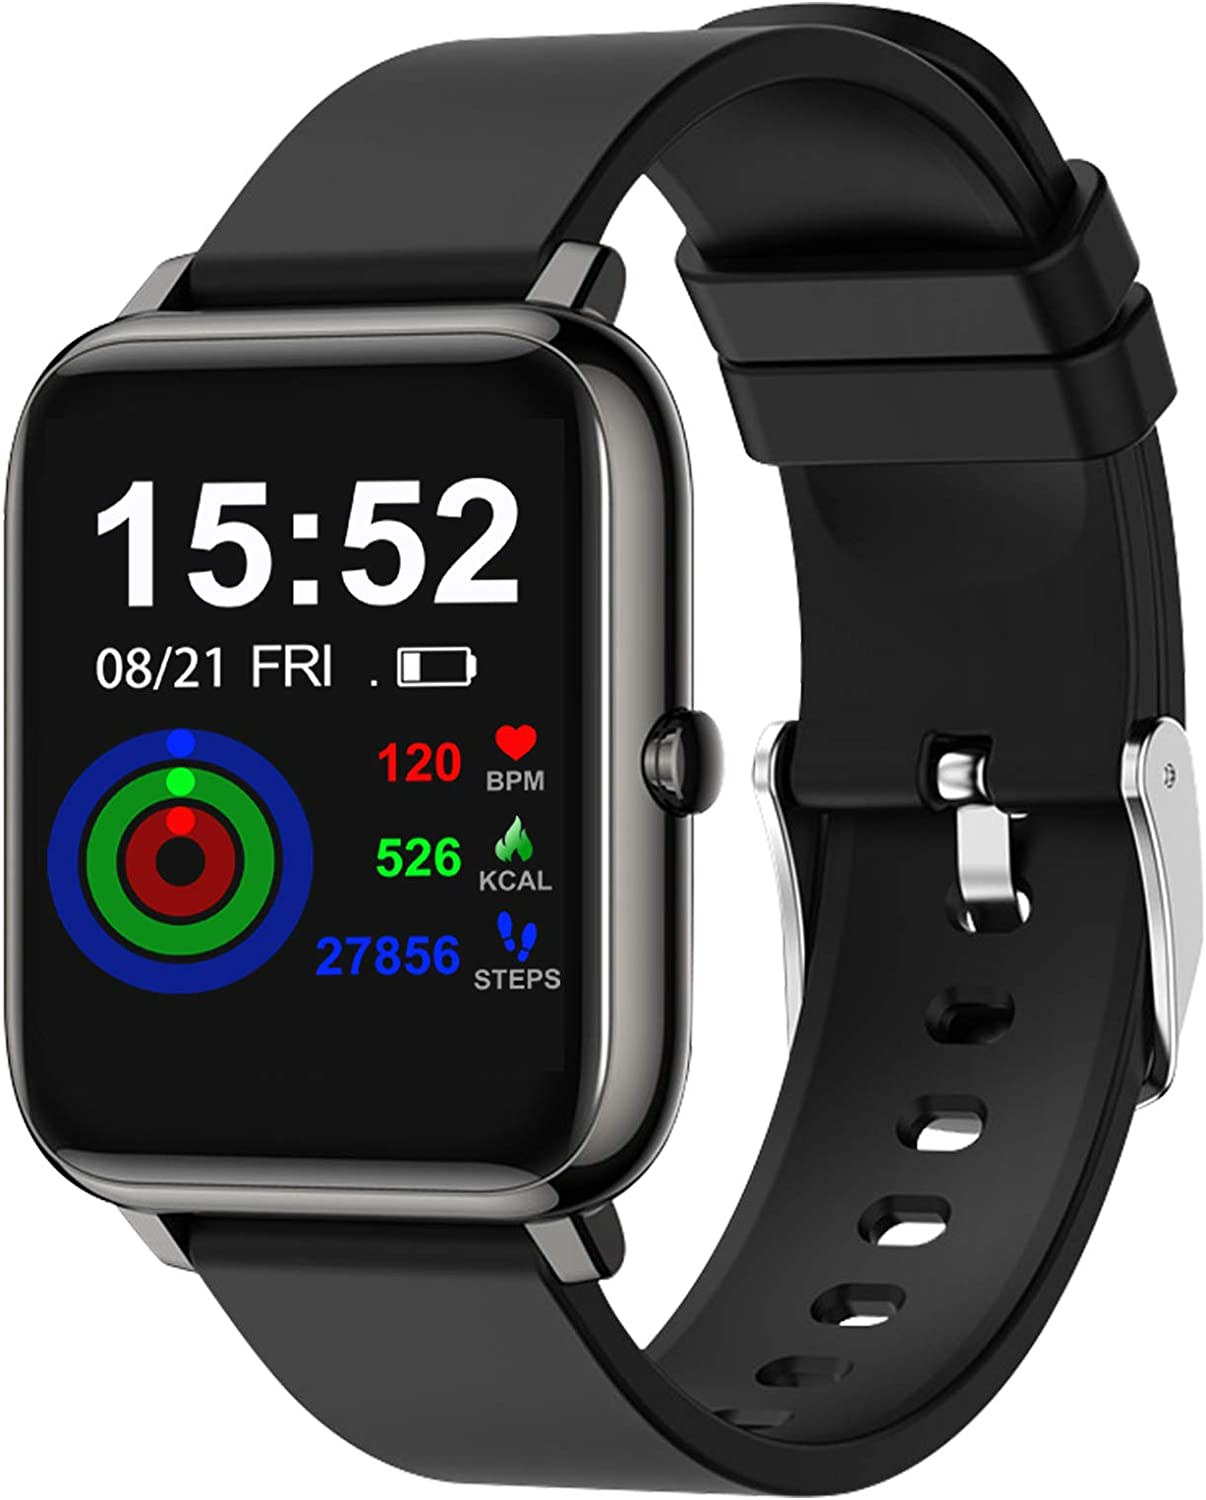 """Smart Watch for Android iOS Phones Compatible iPhone Smartwatch for Women Men Touch Screen Fitness Tracker with Heart Rate Step Calorie Counter Sleep Monitor IP68 Waterproof Pedometer with 1.4"""" Black"""